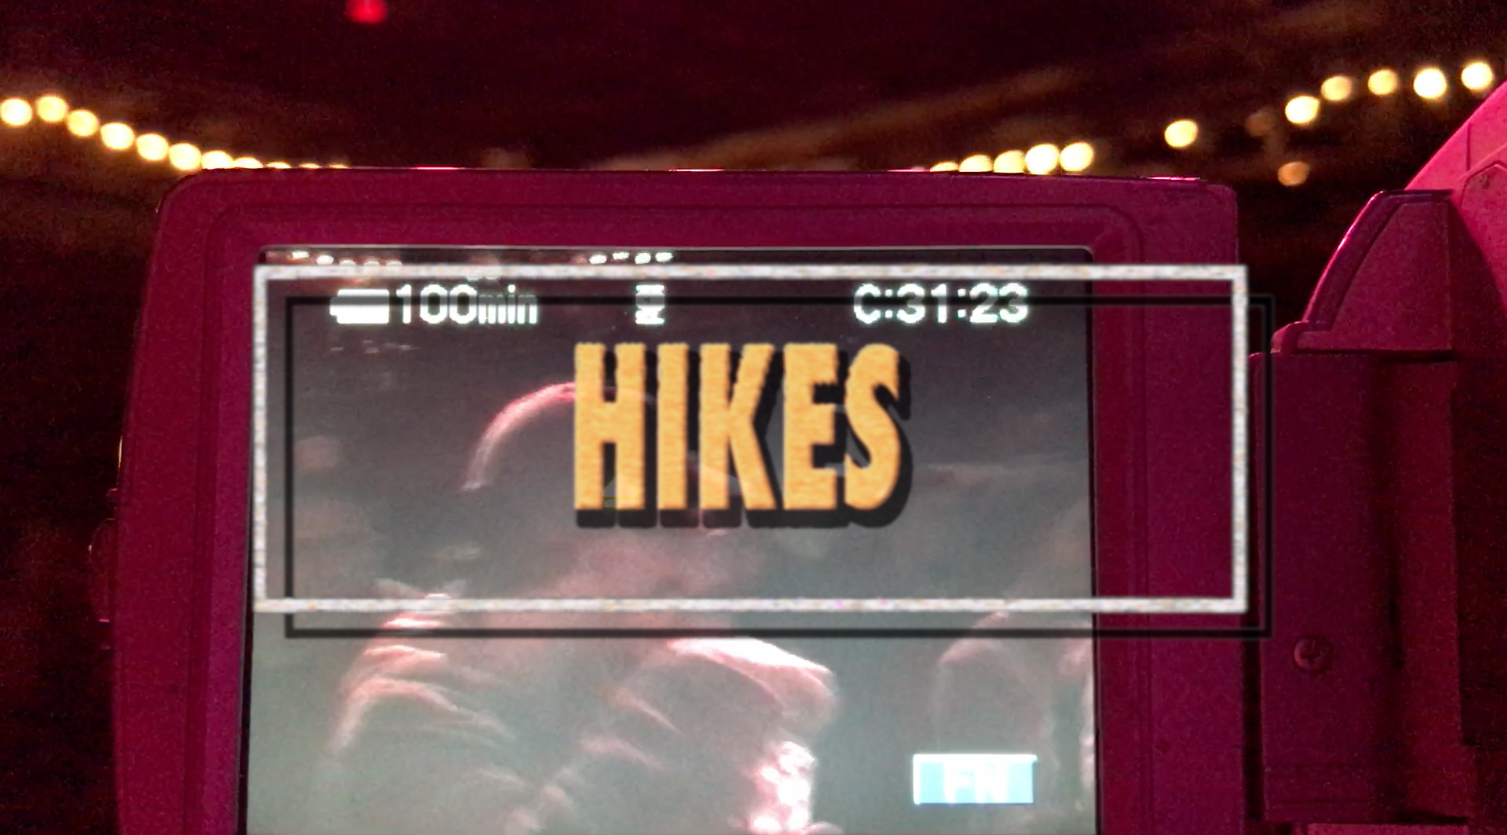 Hikes - Granddad Live (2017)   A live music video of the band Hikes performing in Austin, TX.